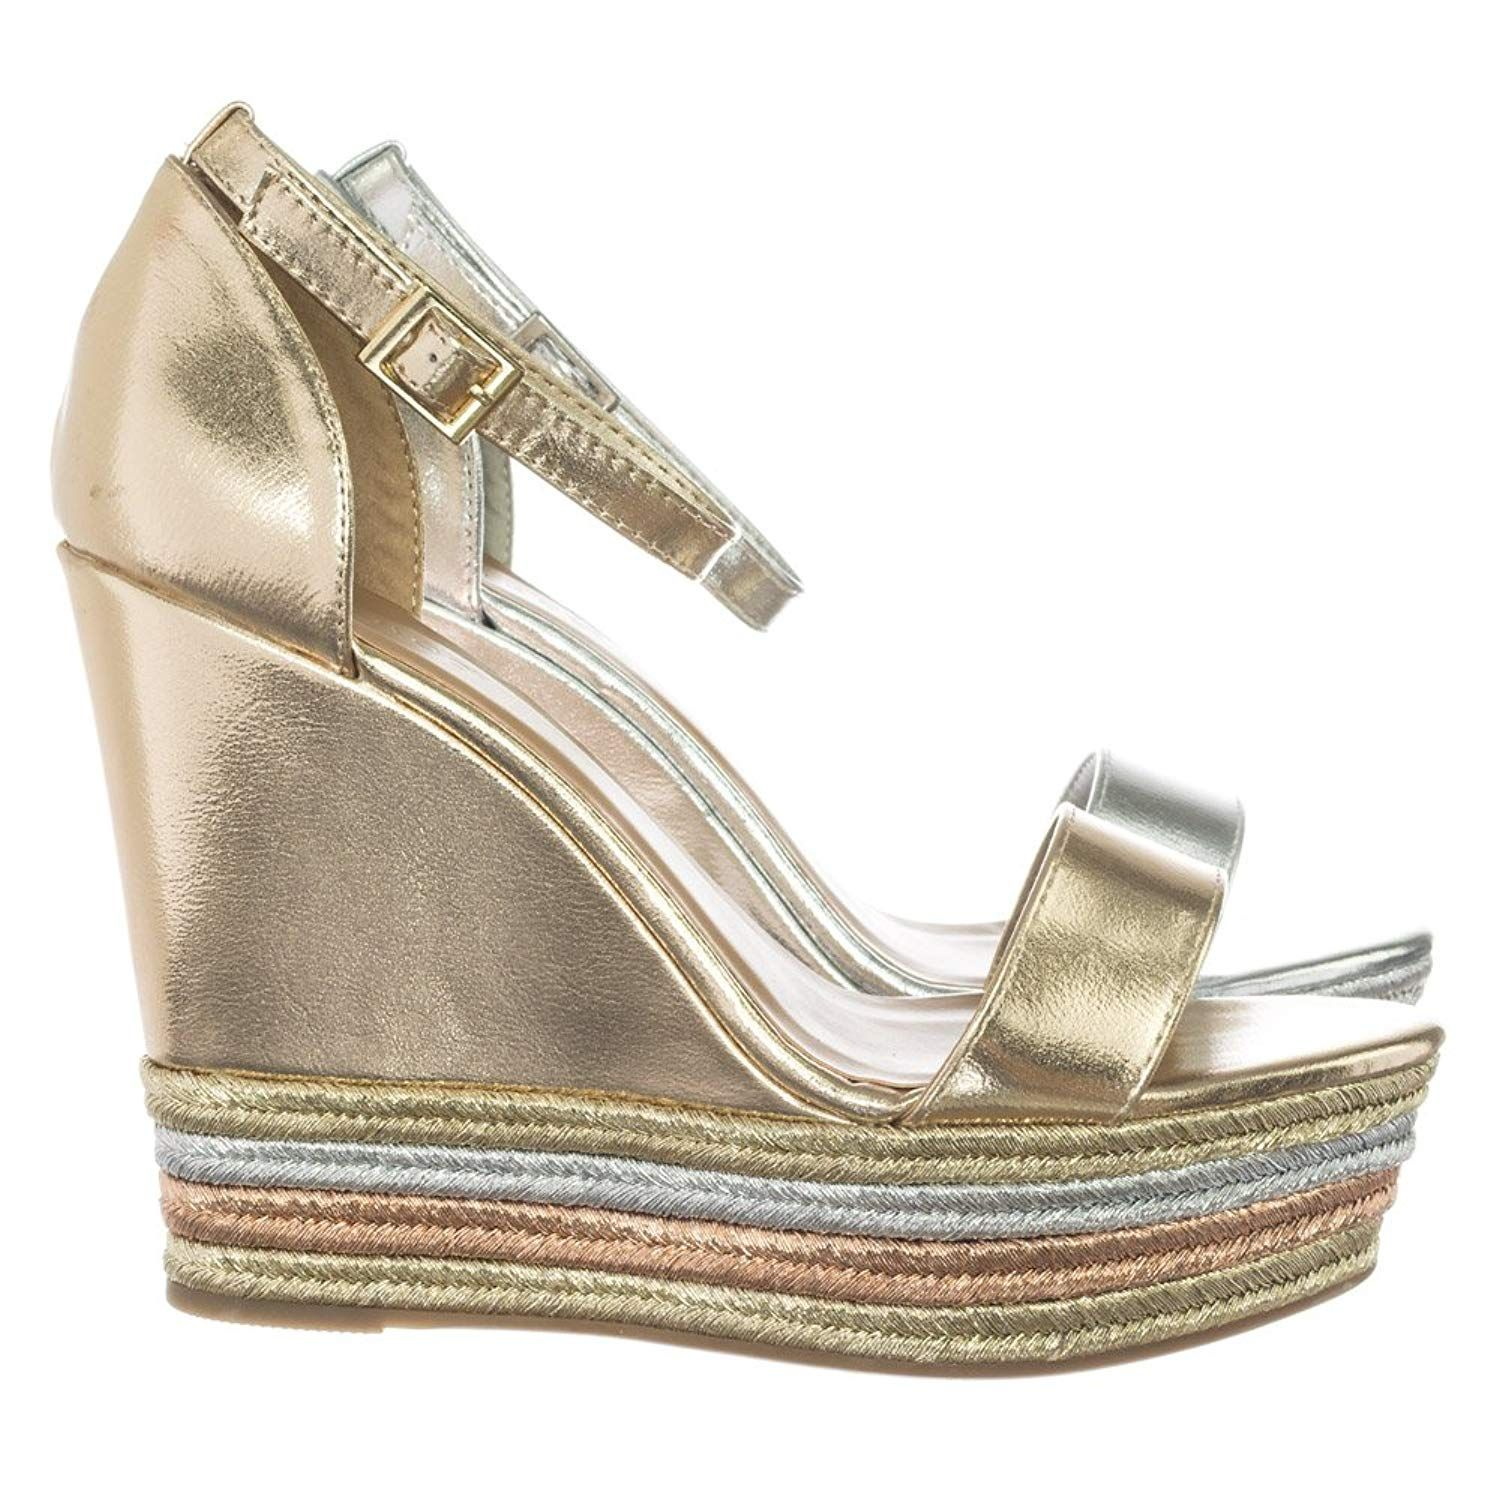 58acd2a2cba Metallic Multi Colored Espadrille Jute Wrap Platform Wedge Dress Sandal.  About This Shoes . Women s